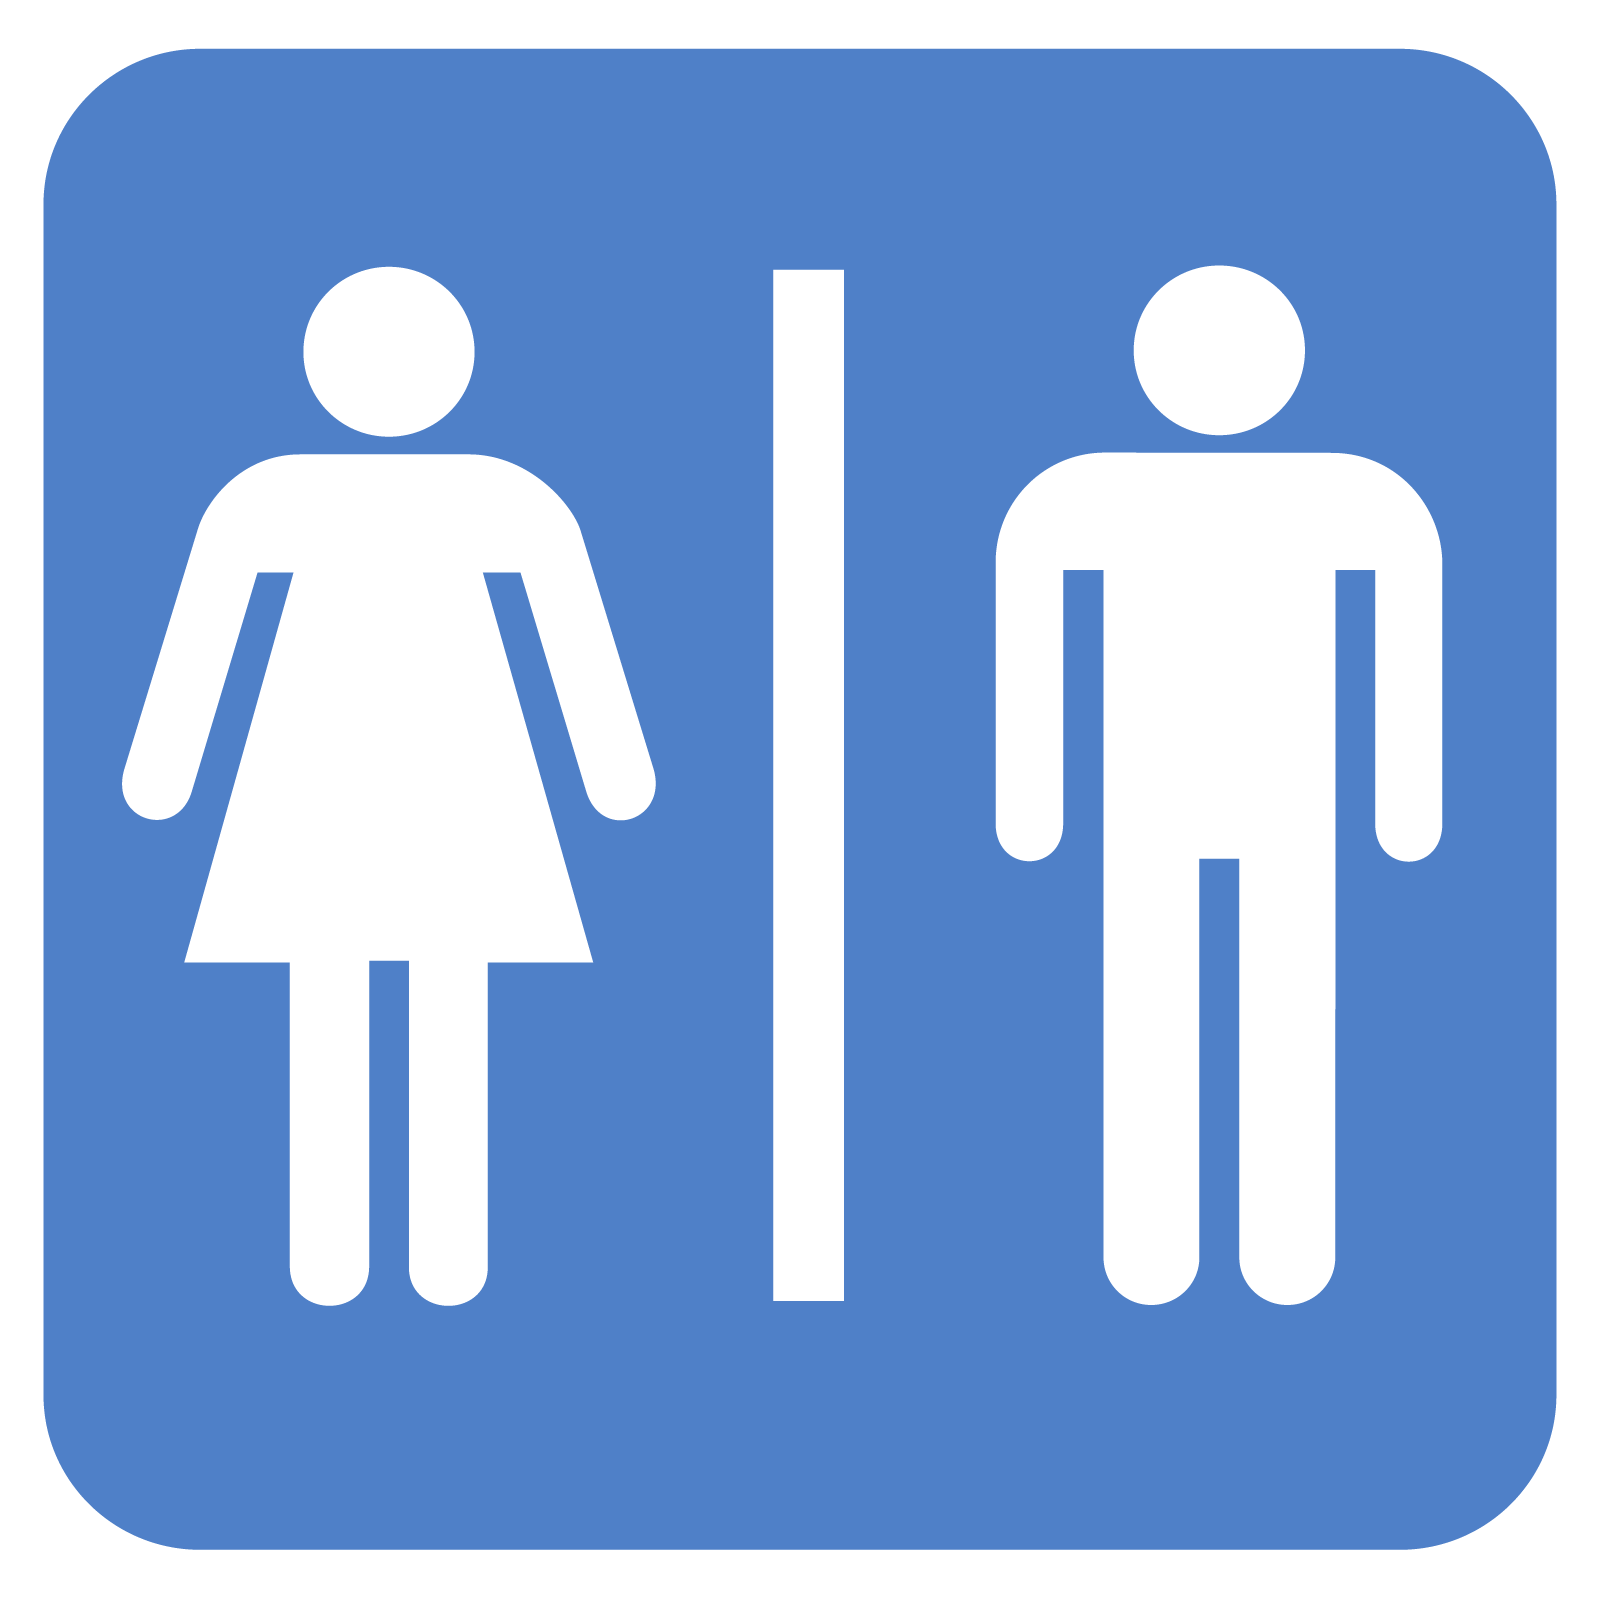 Bathroom Sign Vector Enchanting Filebathroomgendersign  Wikimedia Commons Decorating Design